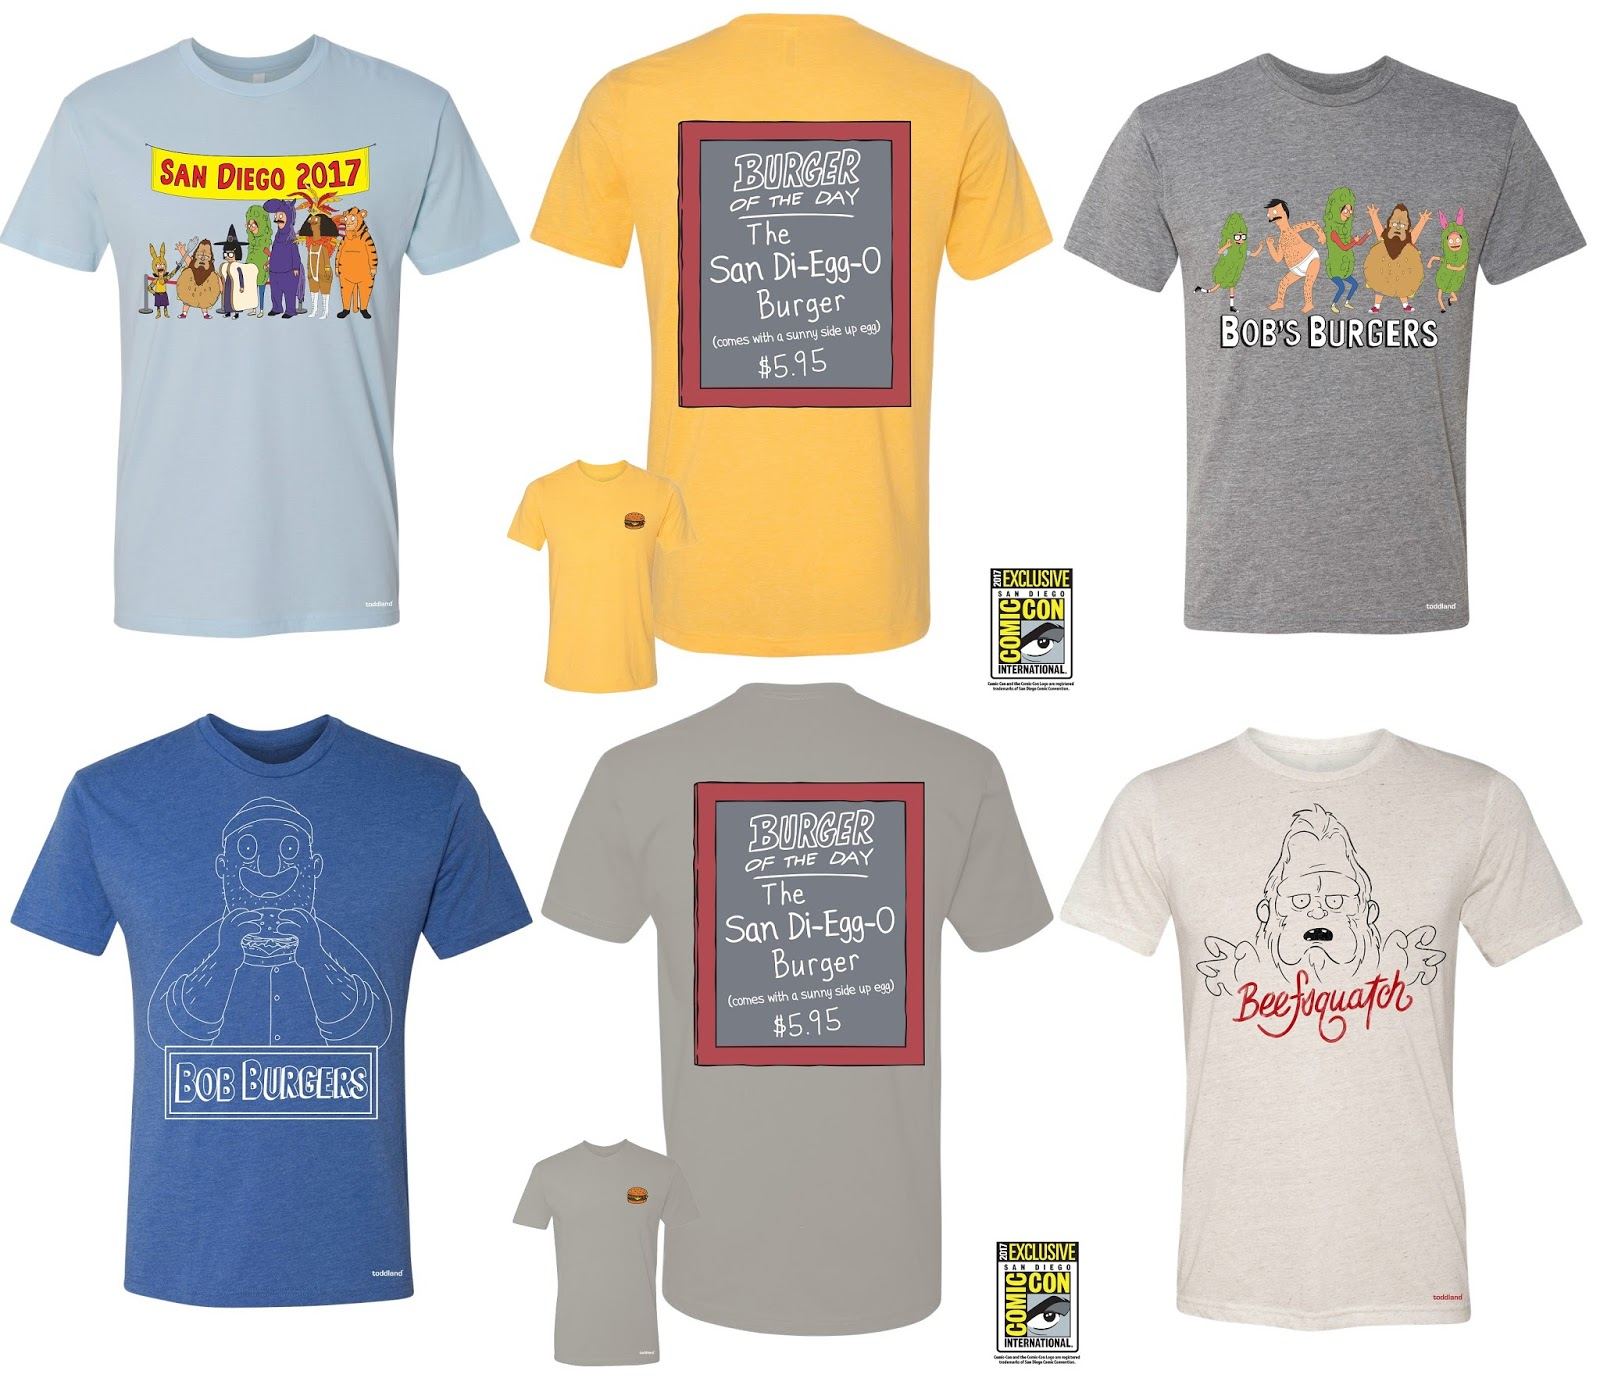 57ad12c99 San Diego Comic-Con 2017 Exclusive Bob's Burgers T-Shirt Collection by  Toddland